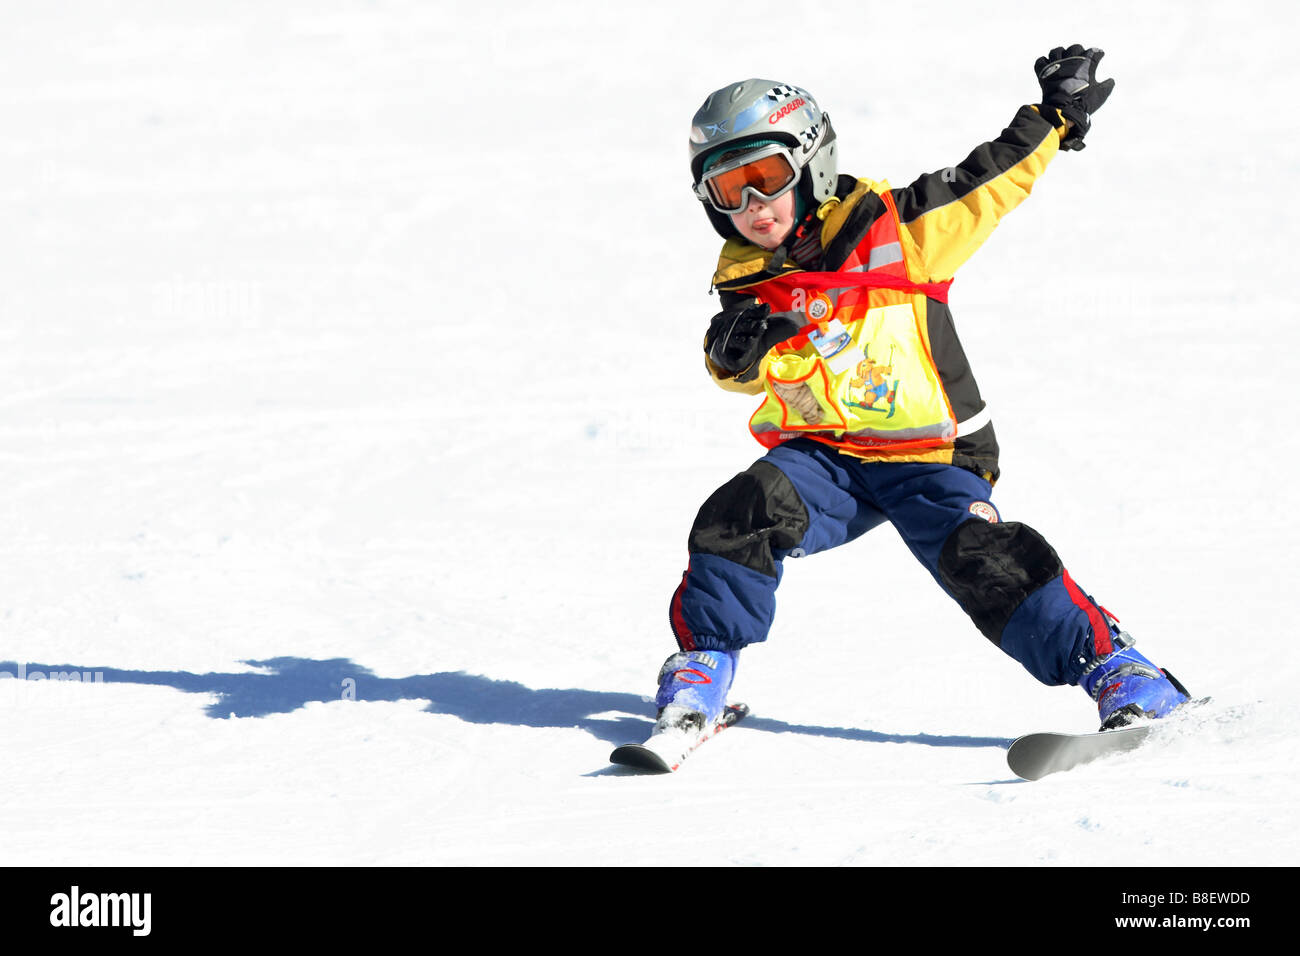 A kid learning skiing - Stock Image